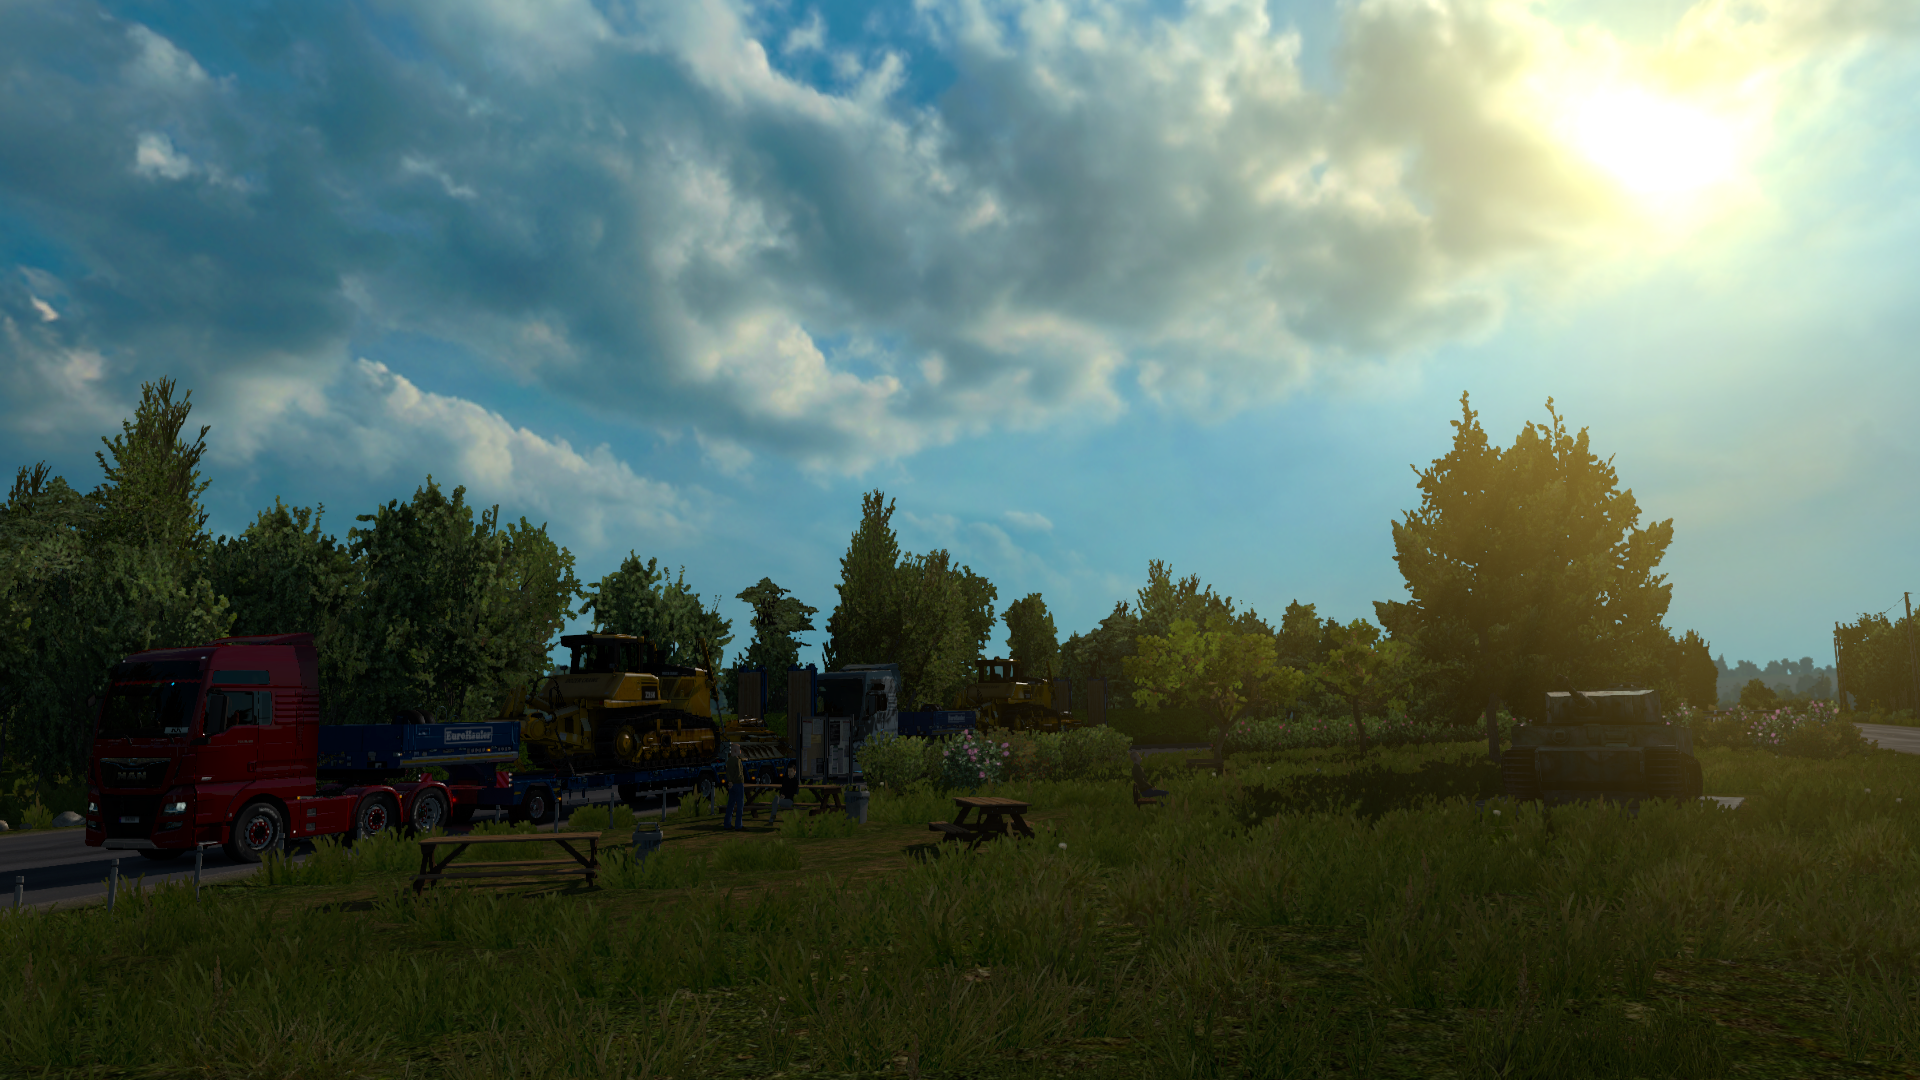 ets2_20190210_013205_00.png